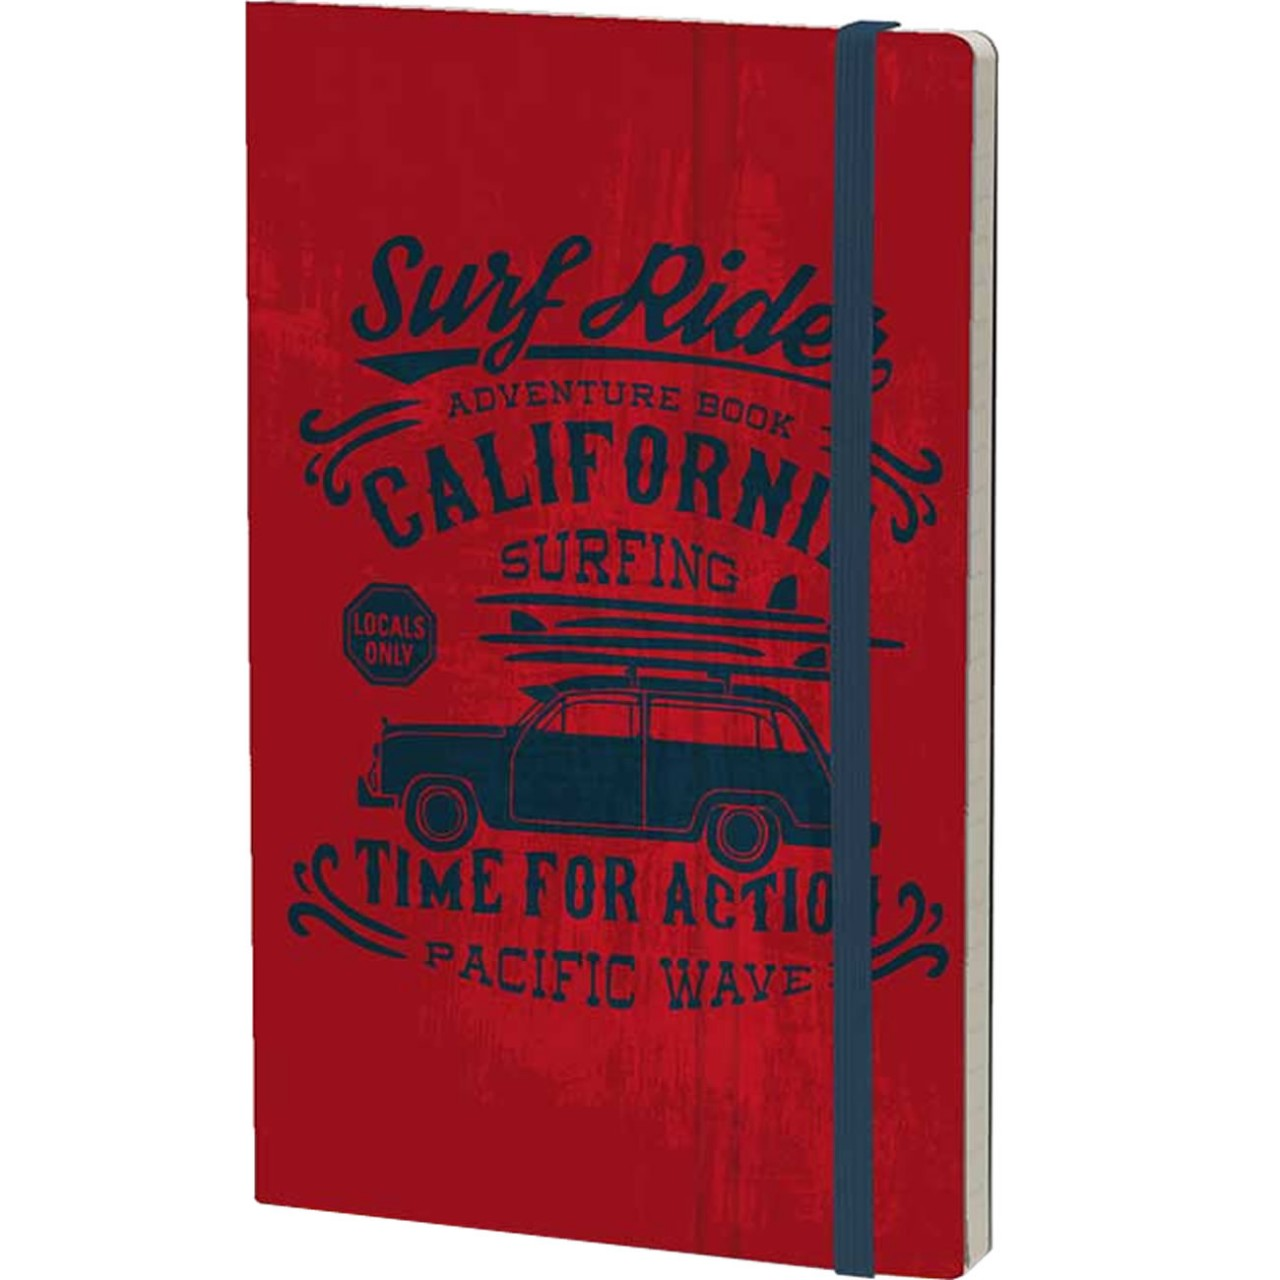 Stifflexible Notizbuch VINTAGE SURFING (Adventure) 9 x 14 cm 144 S., RED